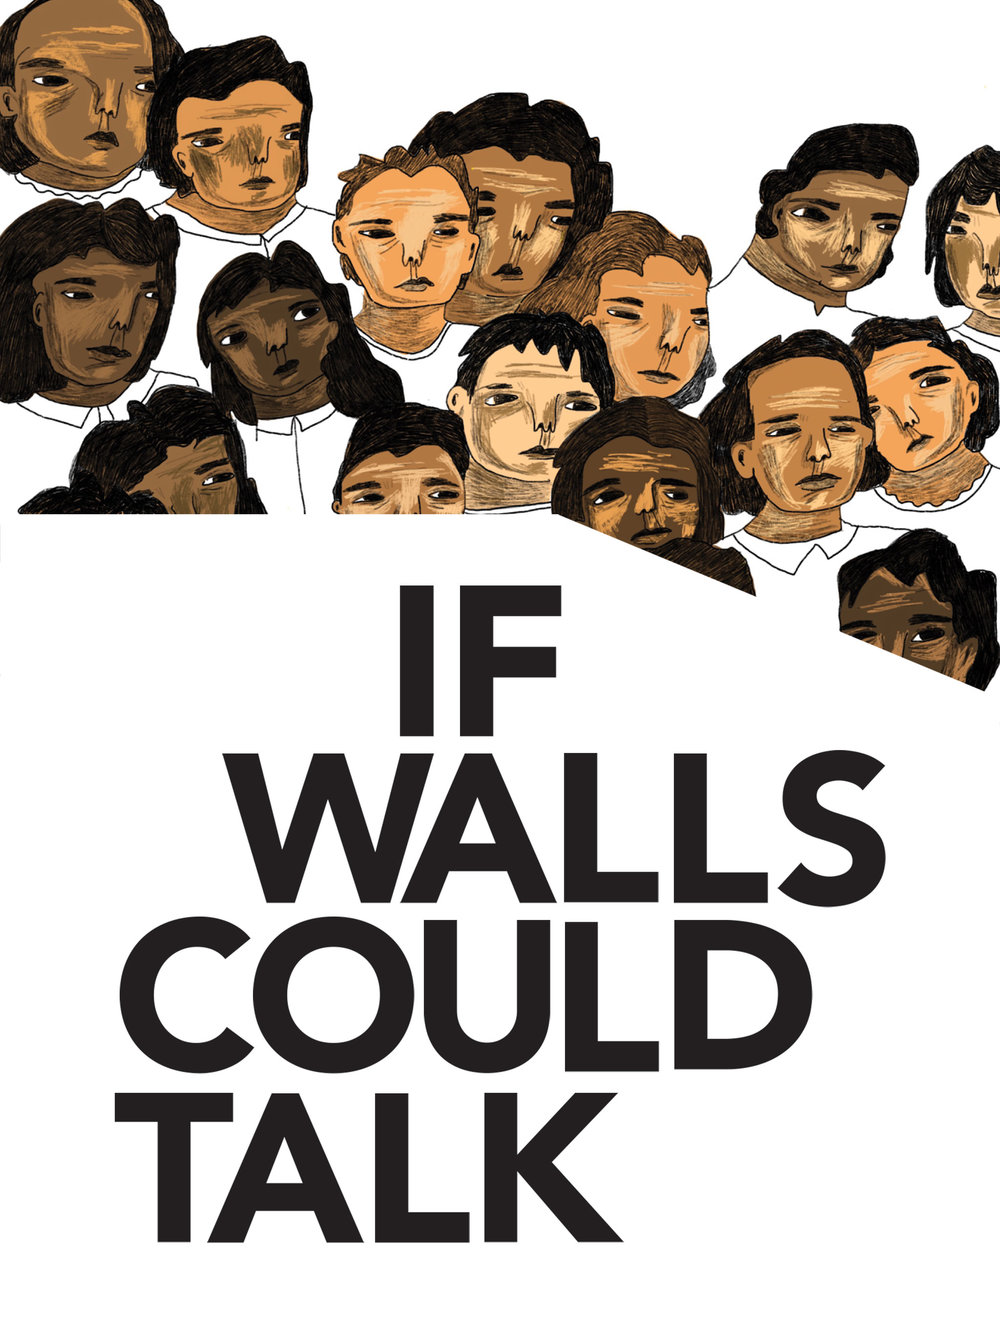 If Walls Could Talk    October 20, 2018 at 7:00 pm Convocation Hall, University of Winnipeg  Get an inside look at Music and Architecture's fascinating and complicated long-term relationship. Each fabulous on their own, and even better when they work together. They fight, they change, they pretend not to need each other. No matter what happens, though, they just keep on getting back together. Join Polycoro for a Talk + Concert led by John Wiens, Artistic Director and Alden Neufeld, Architect  Featuring music by Caroline Shaw, Oleksa Lozowchuk, Benevoli, Marenzio and Uglolini